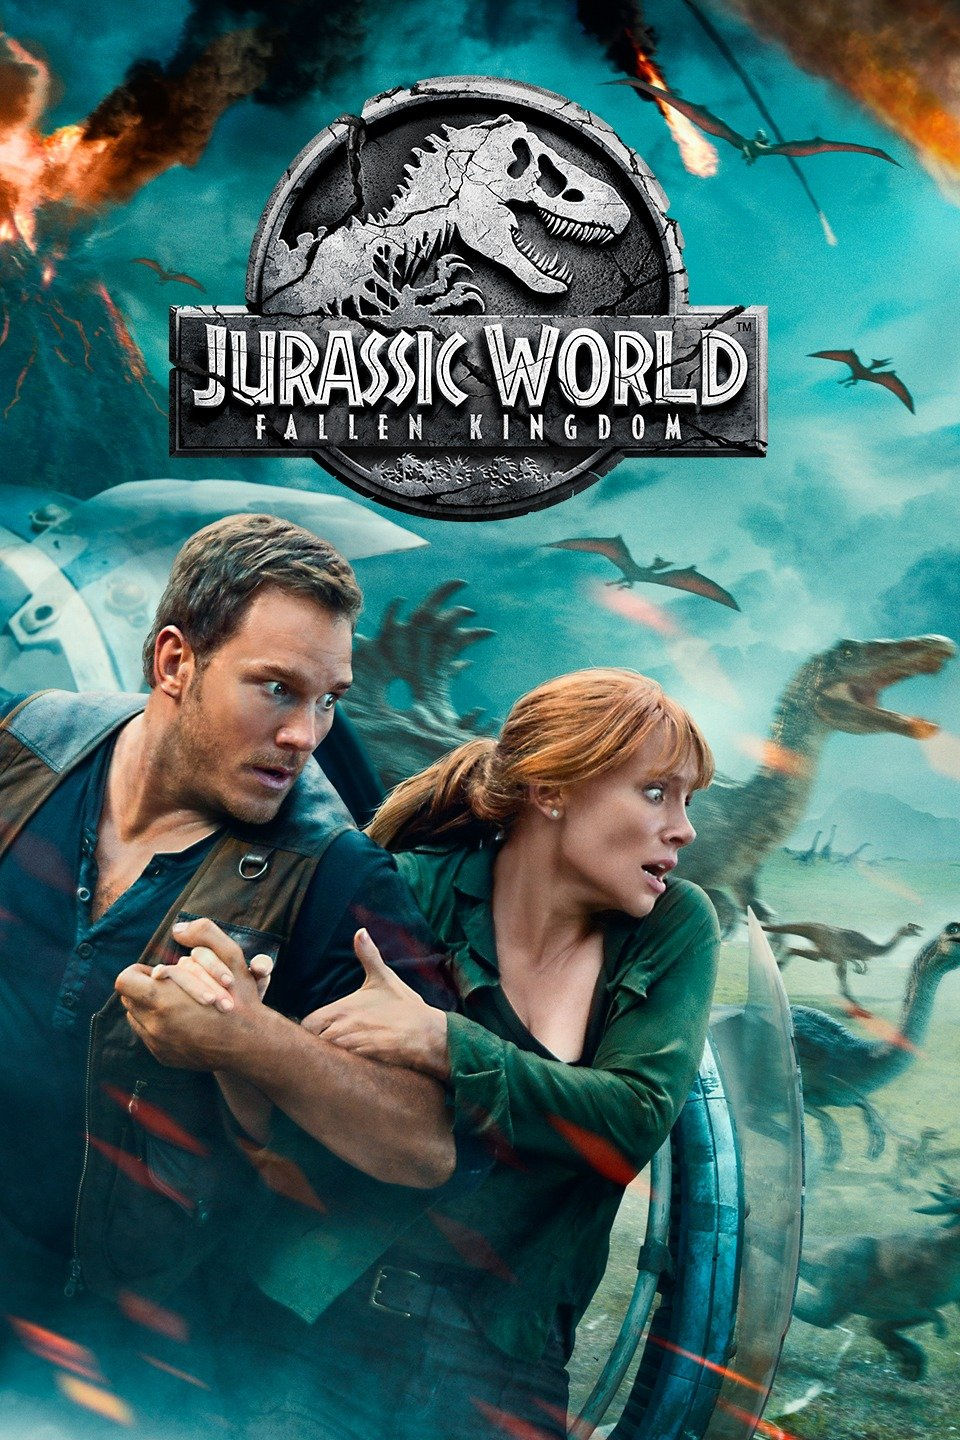 Jurassic World: fallen kingdom dvd cover